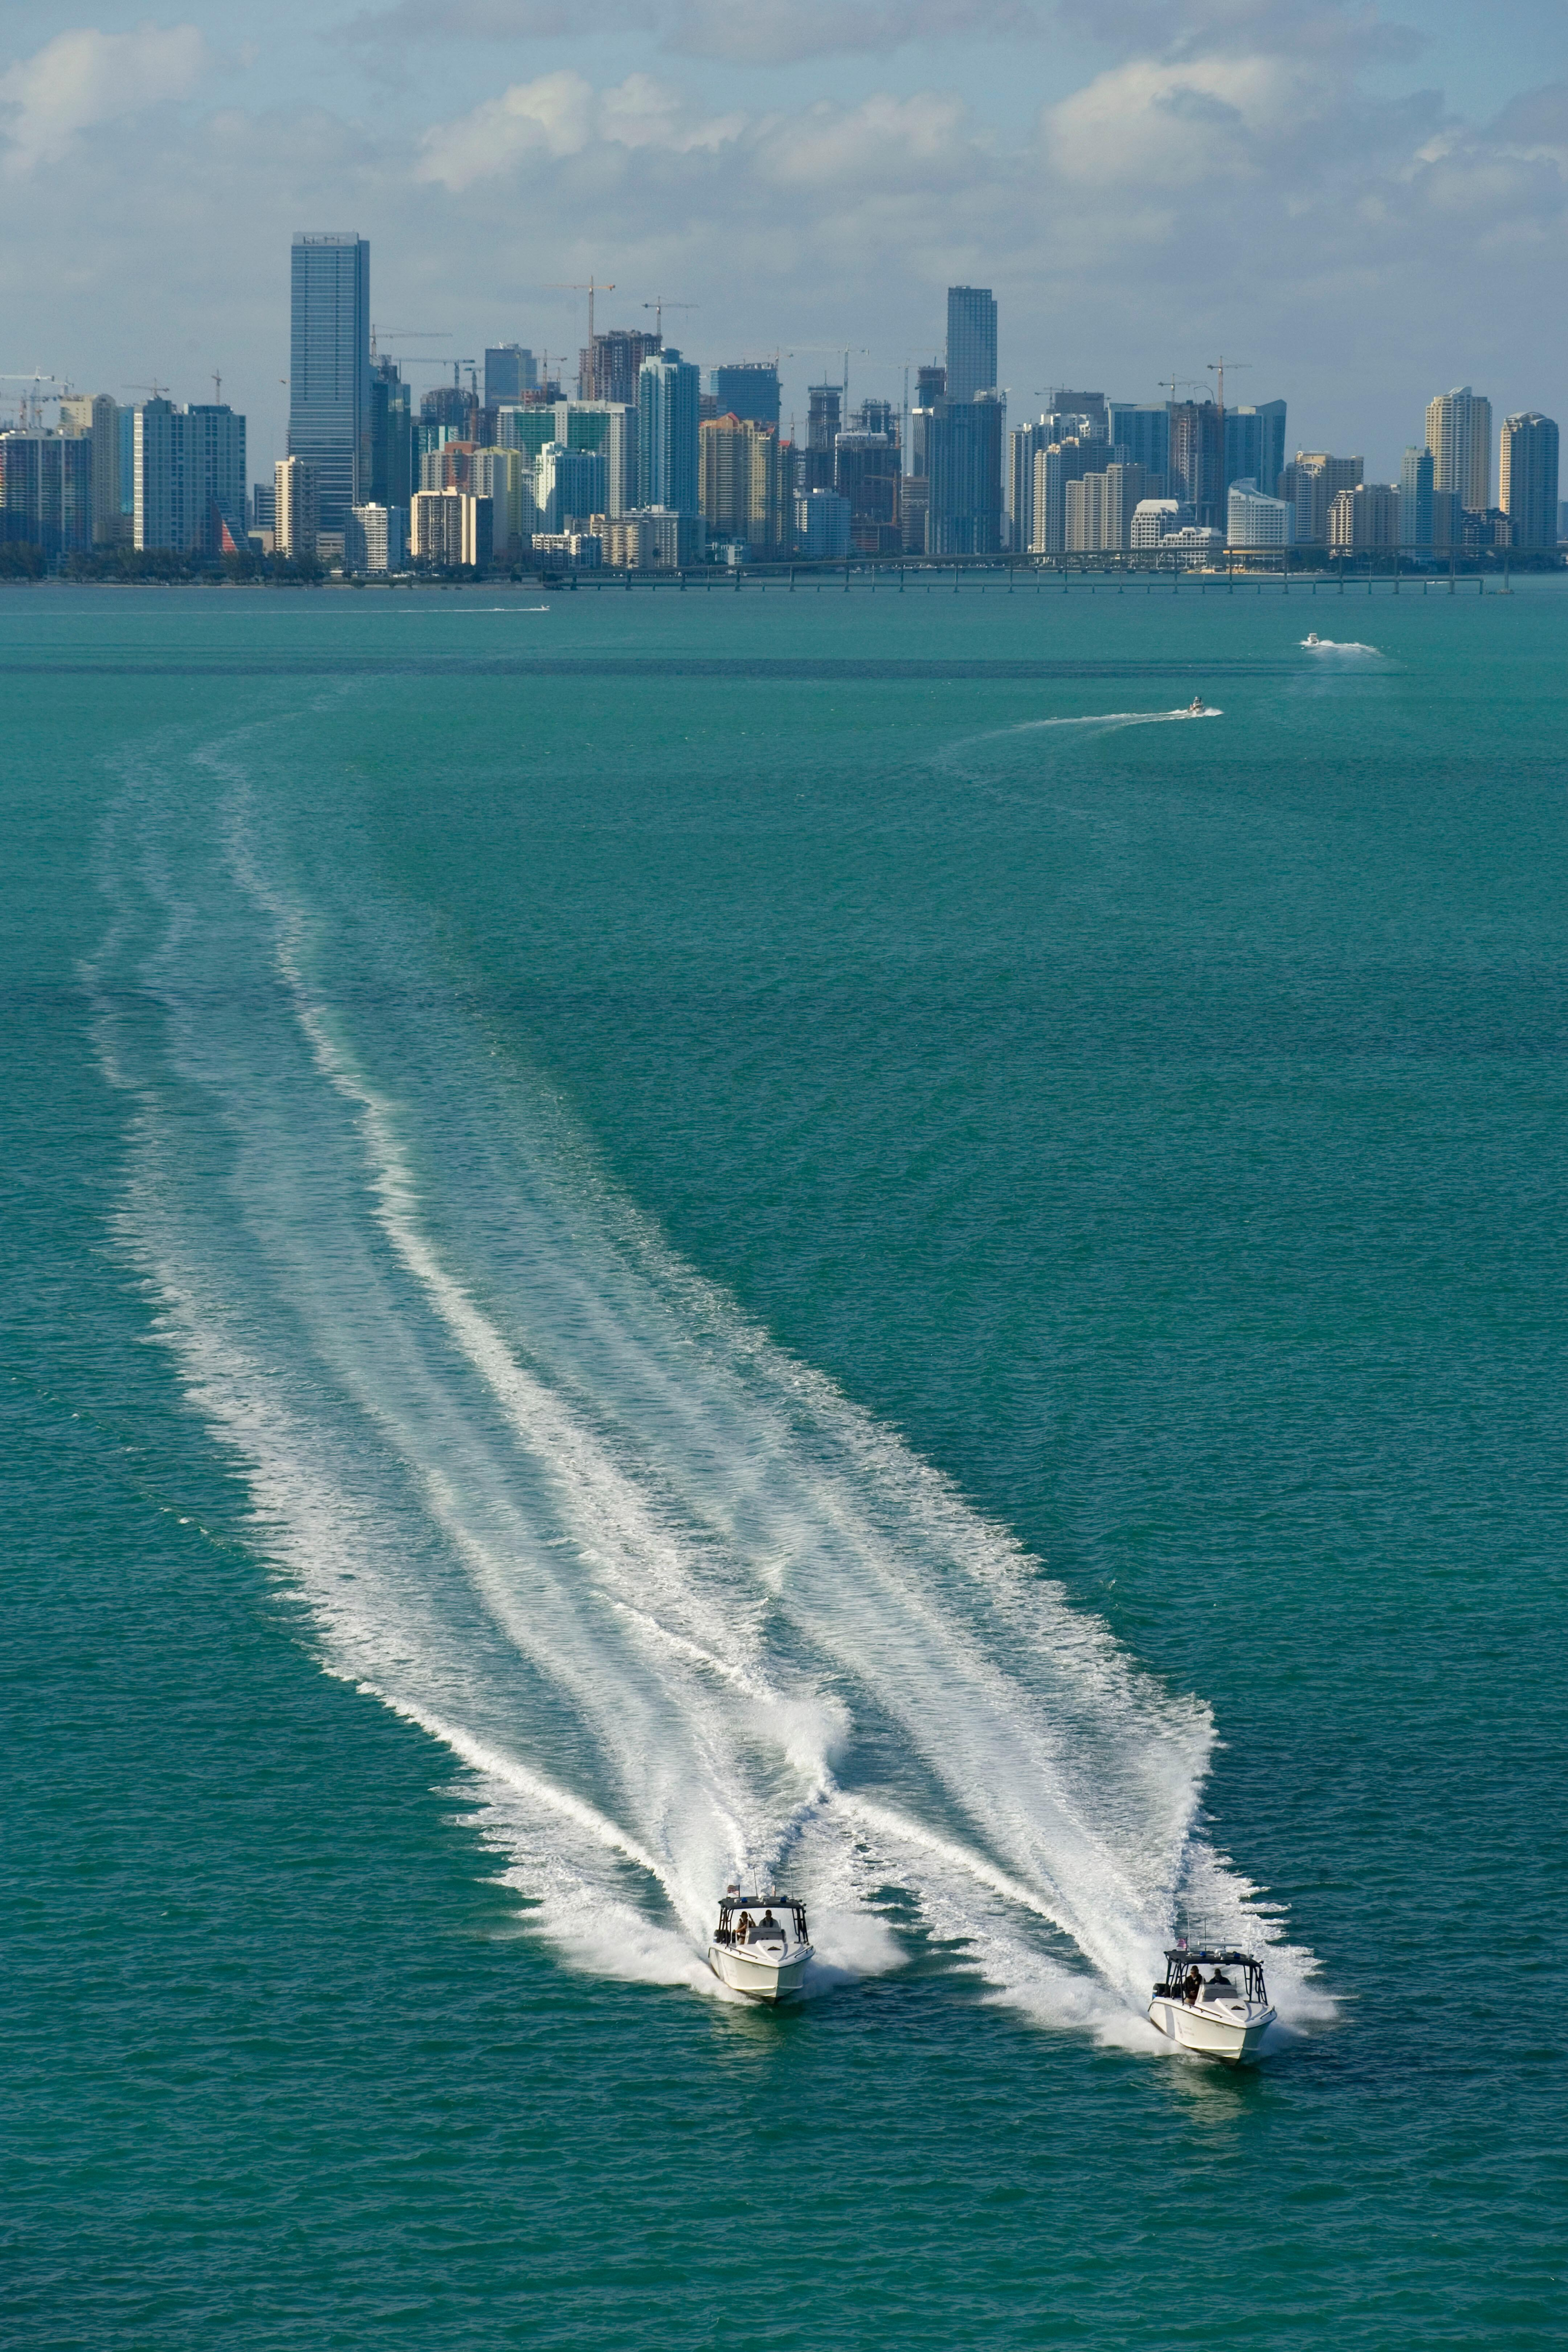 Two CBP marine unit Midnight Express boats patrol the waters off Miami.